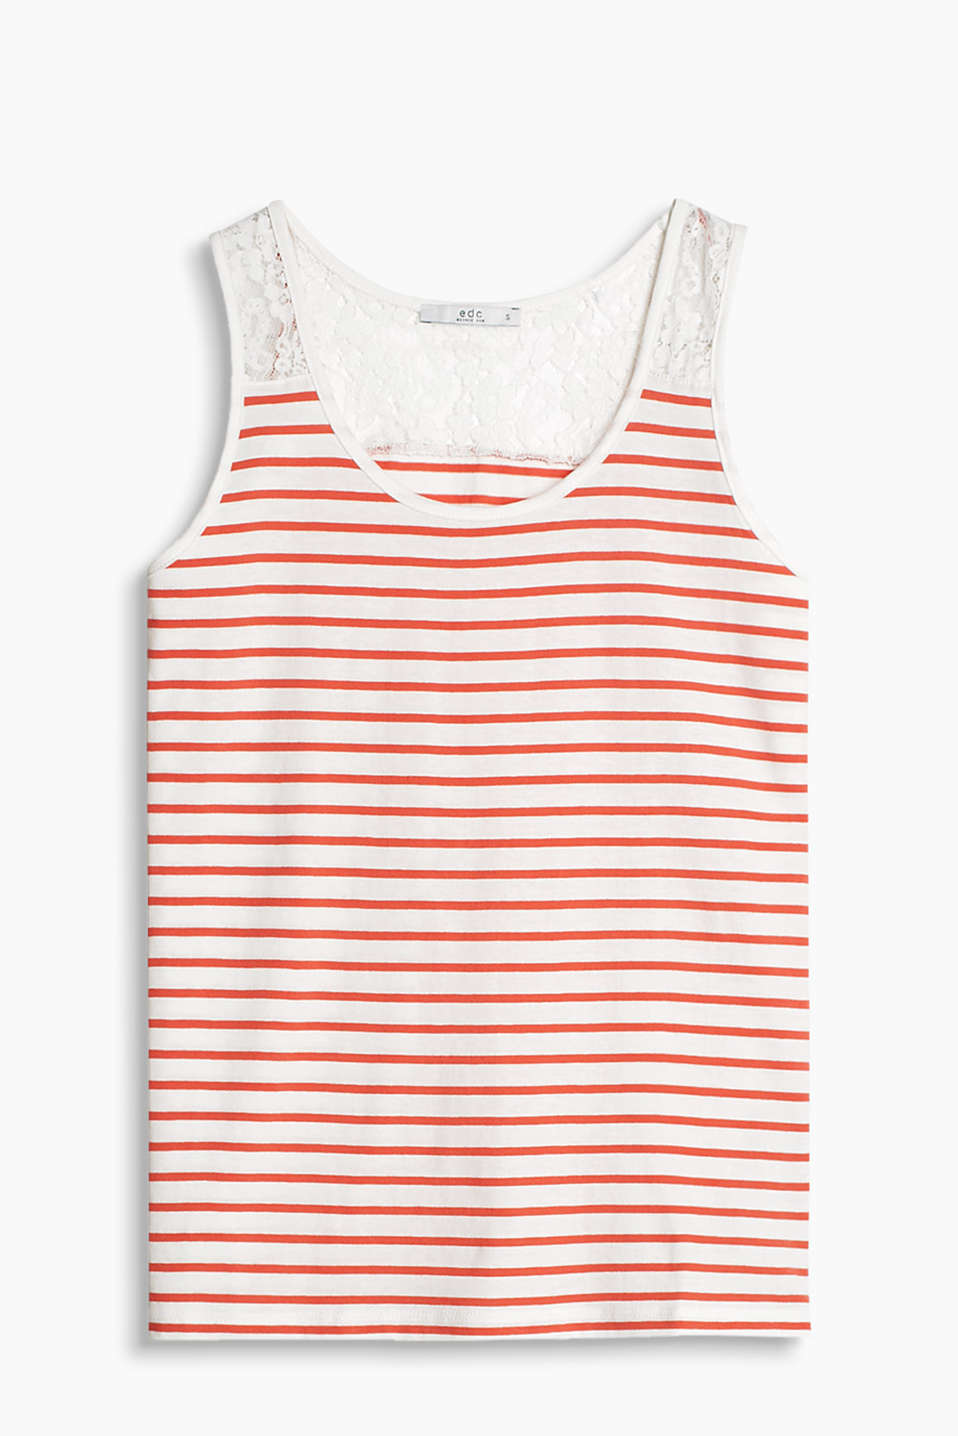 Nautical stripes meet feminine lace: vest in a fashionable material mix look